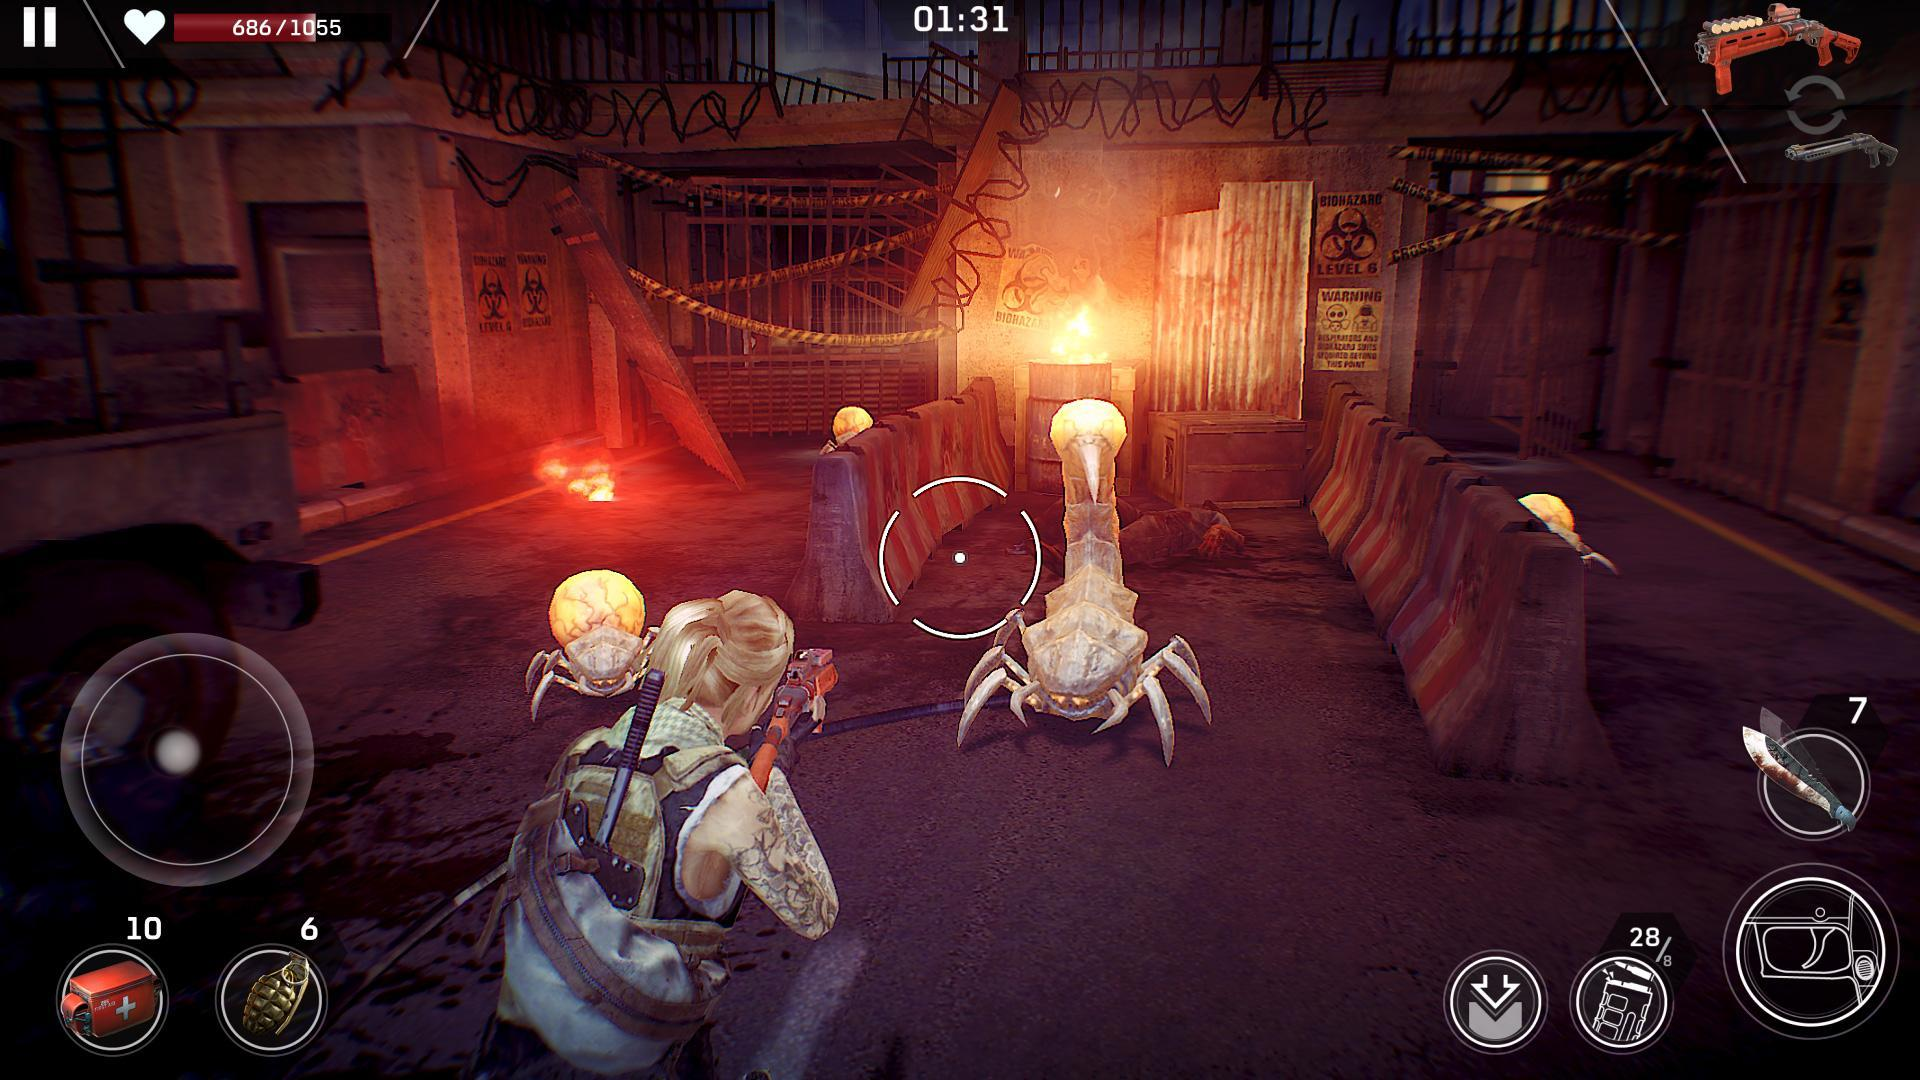 Left to Survive Zombie Survival PvP Shooter 4.2.0 Screenshot 16